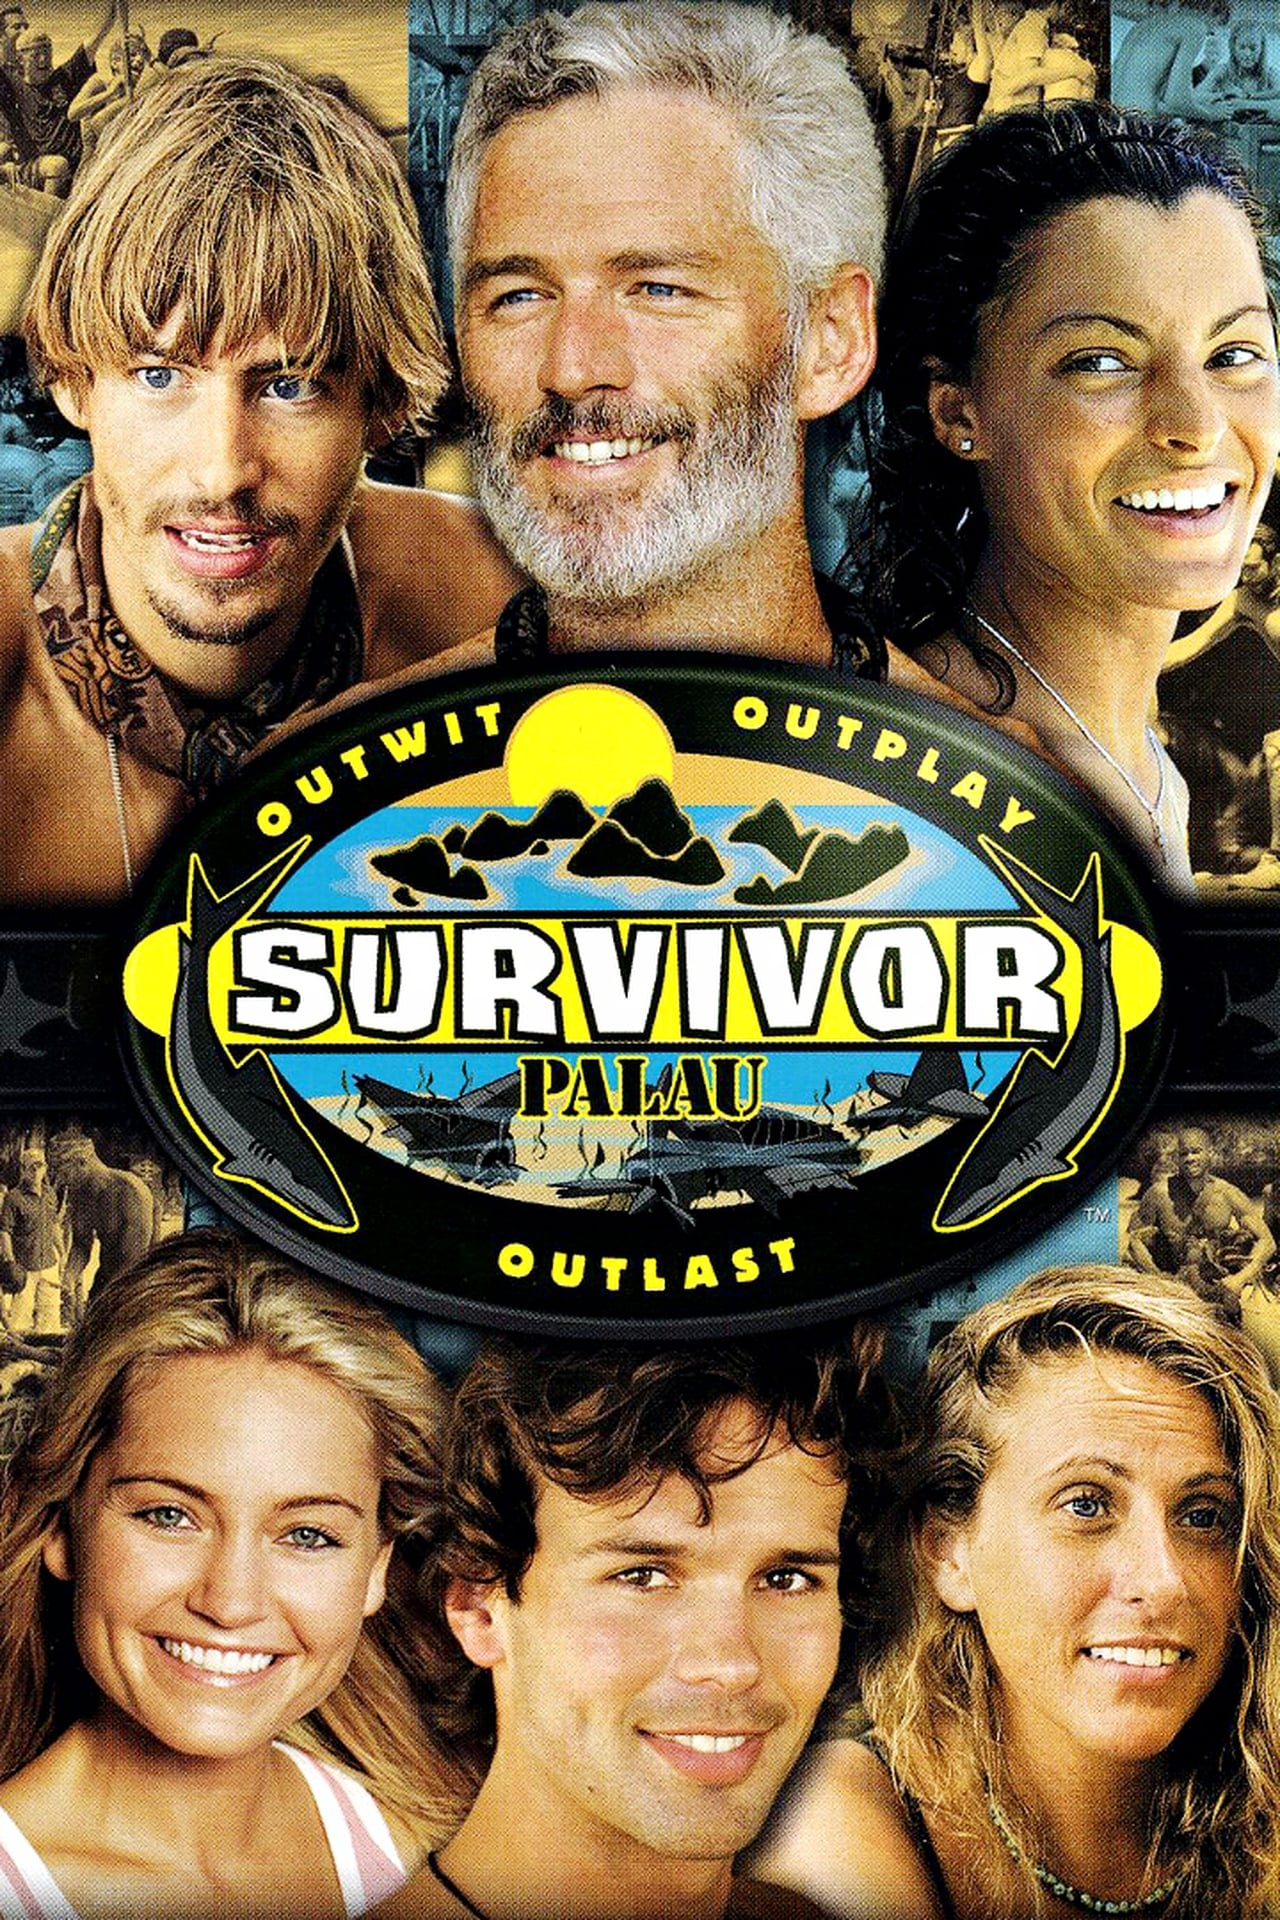 Putlocker Survivor Season 10 (2005)